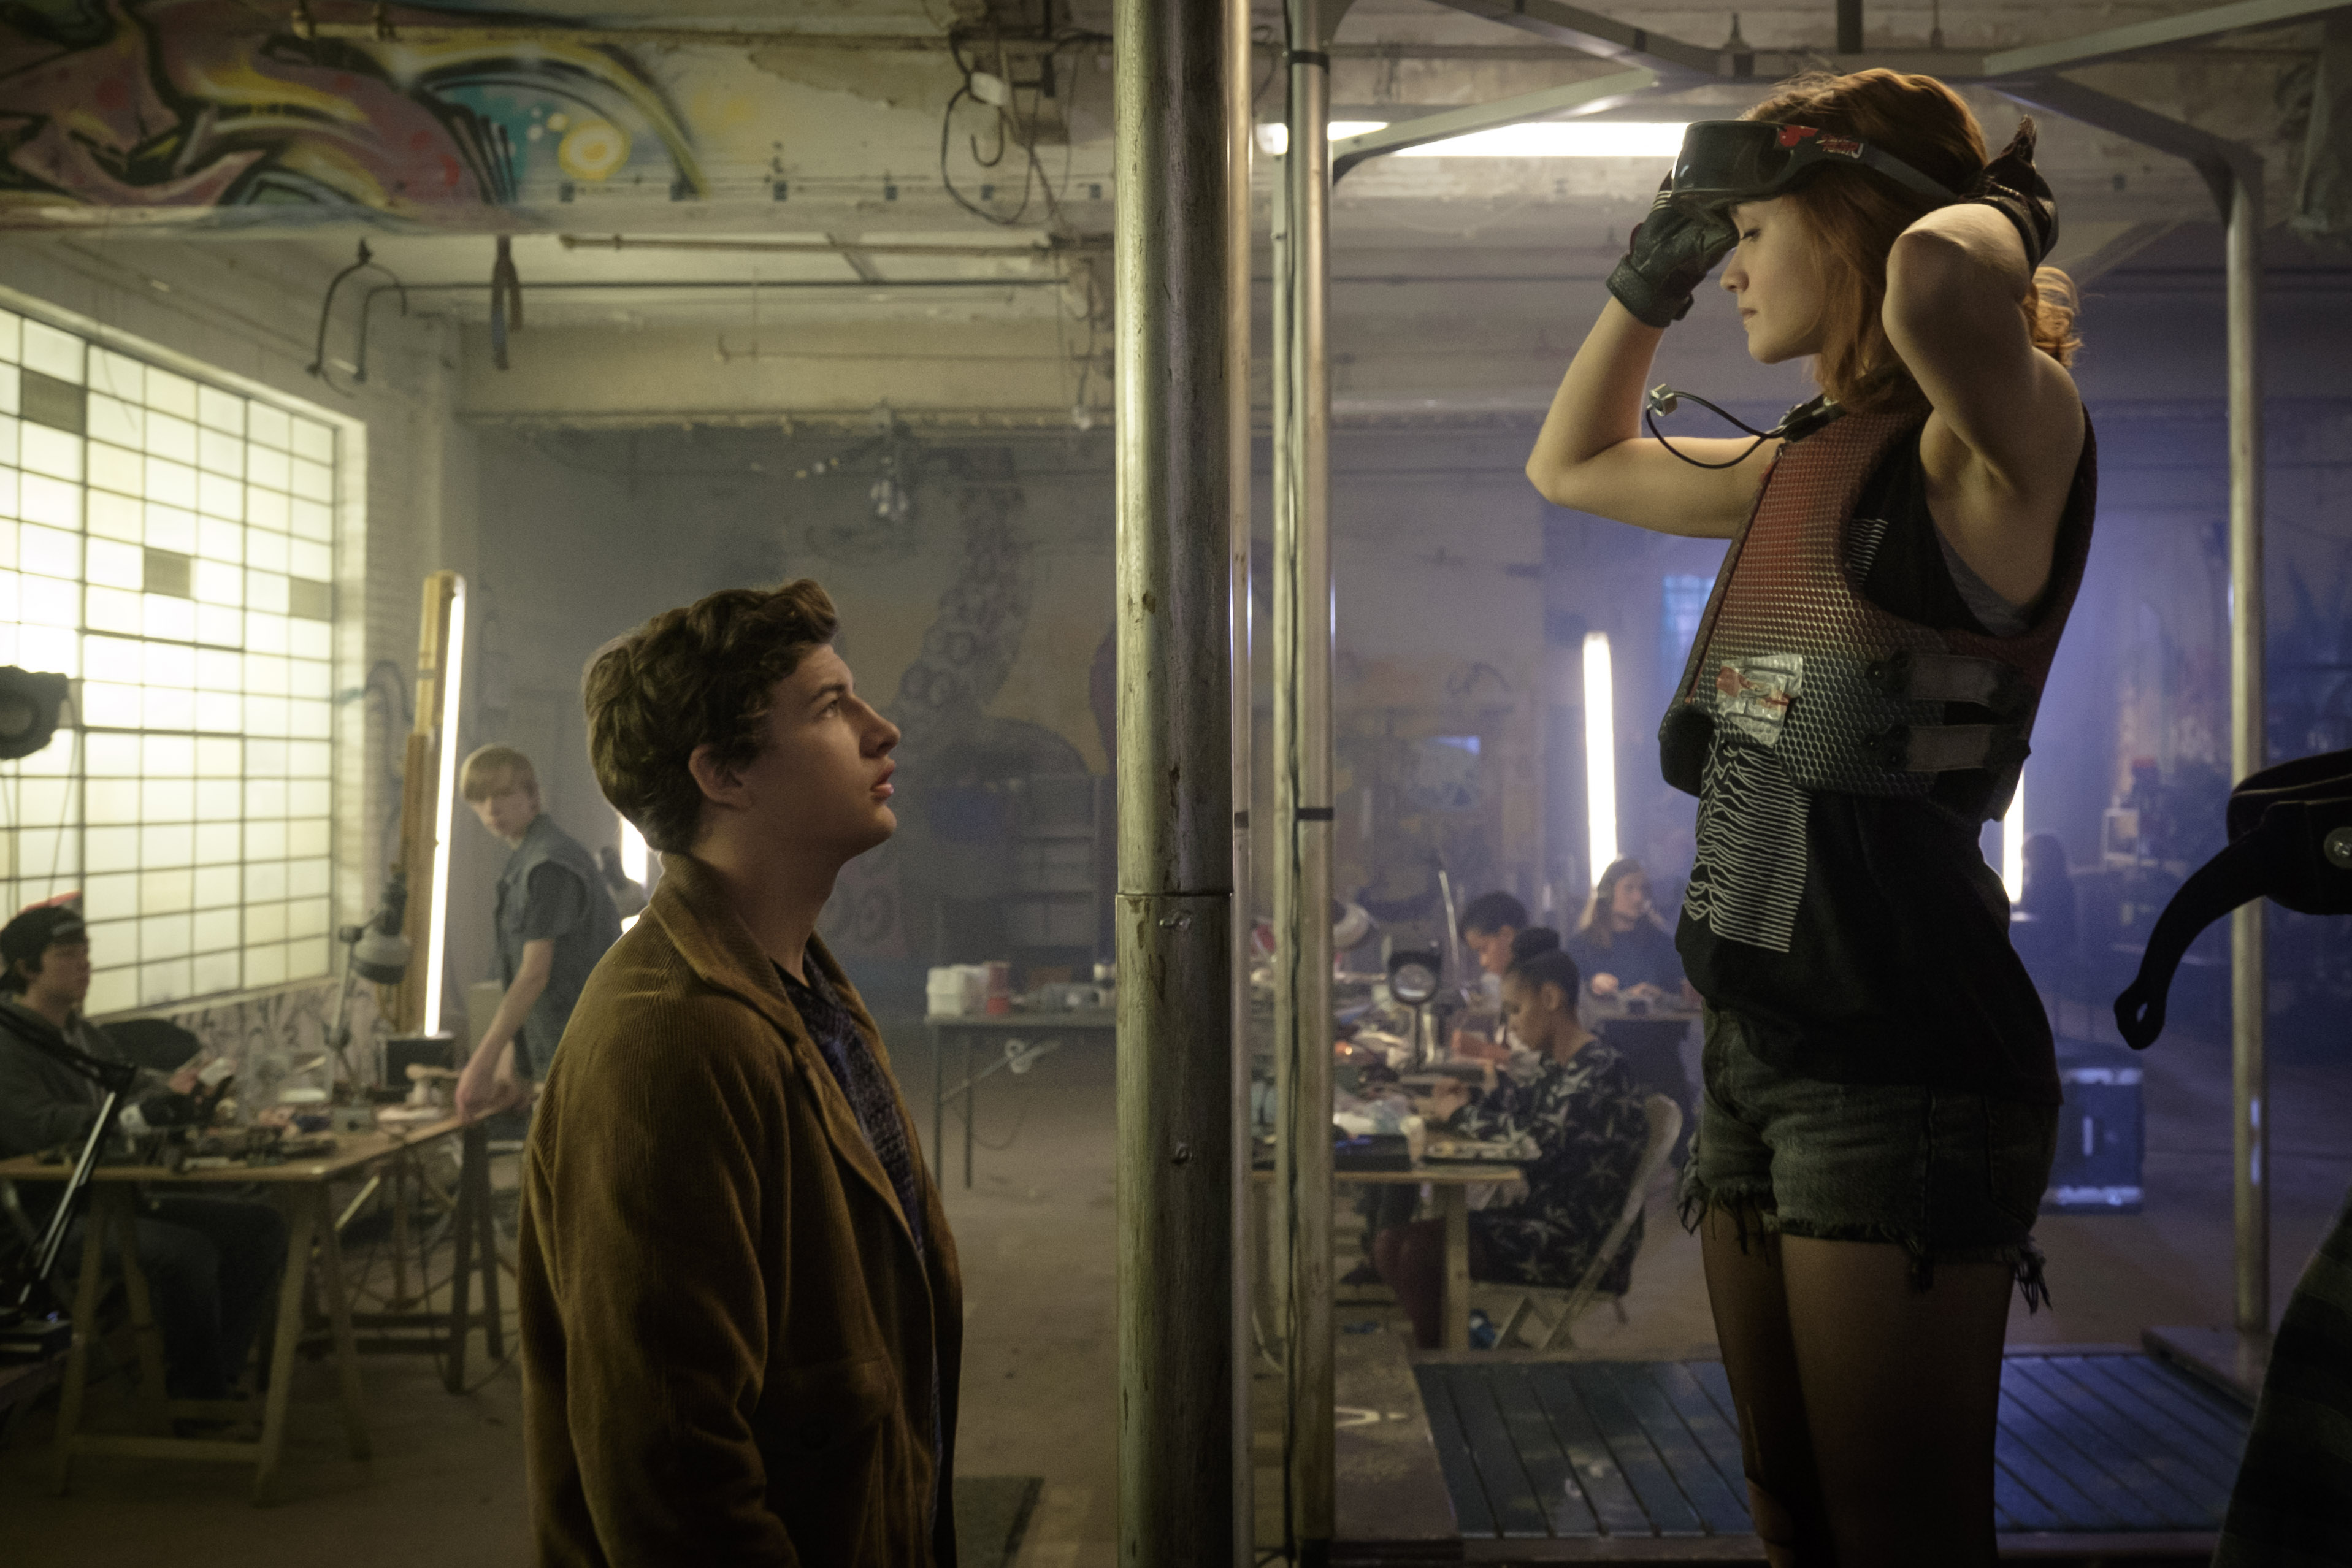 Wade (Tye Sheridan) and Samantha (Olivia Cooke) getting ready for battle in Ready Player One